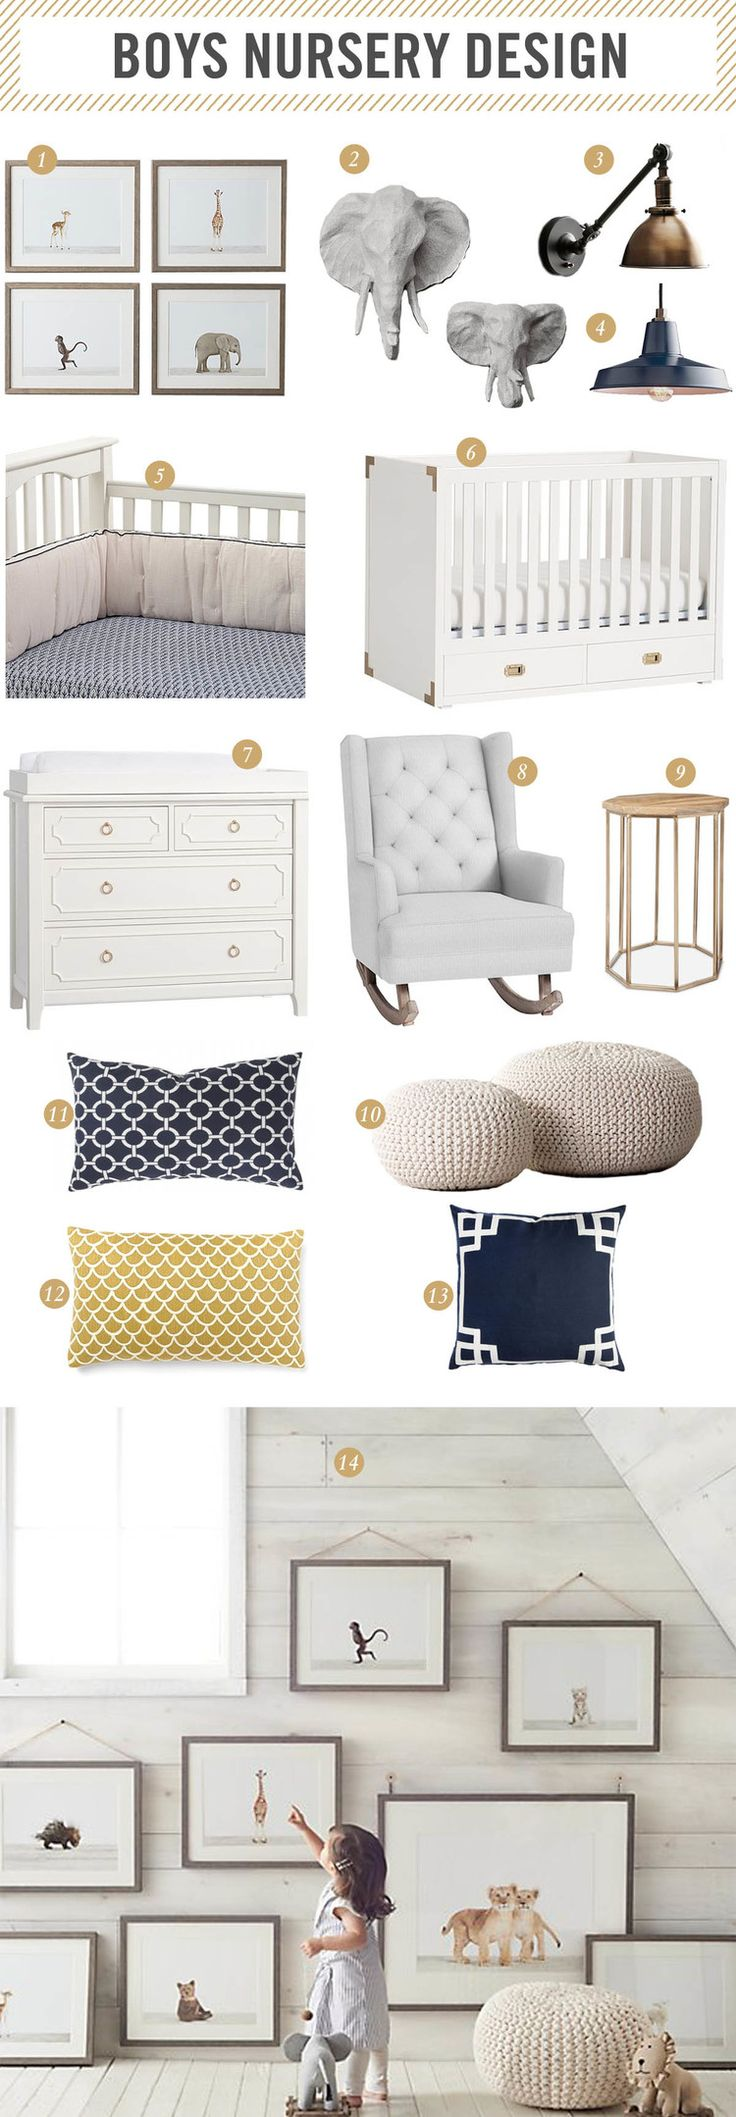 | baby boy nursery design inspiration | color palate - tan instead of yellow